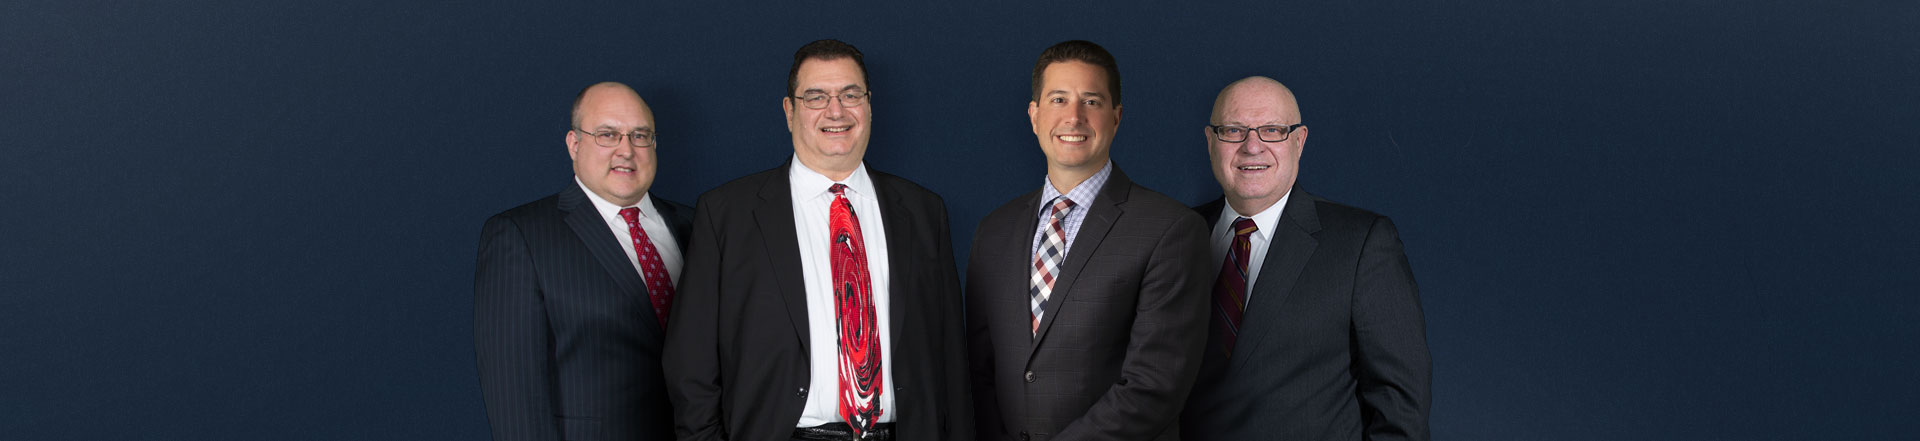 DuPage County Personal Injury Lawyers